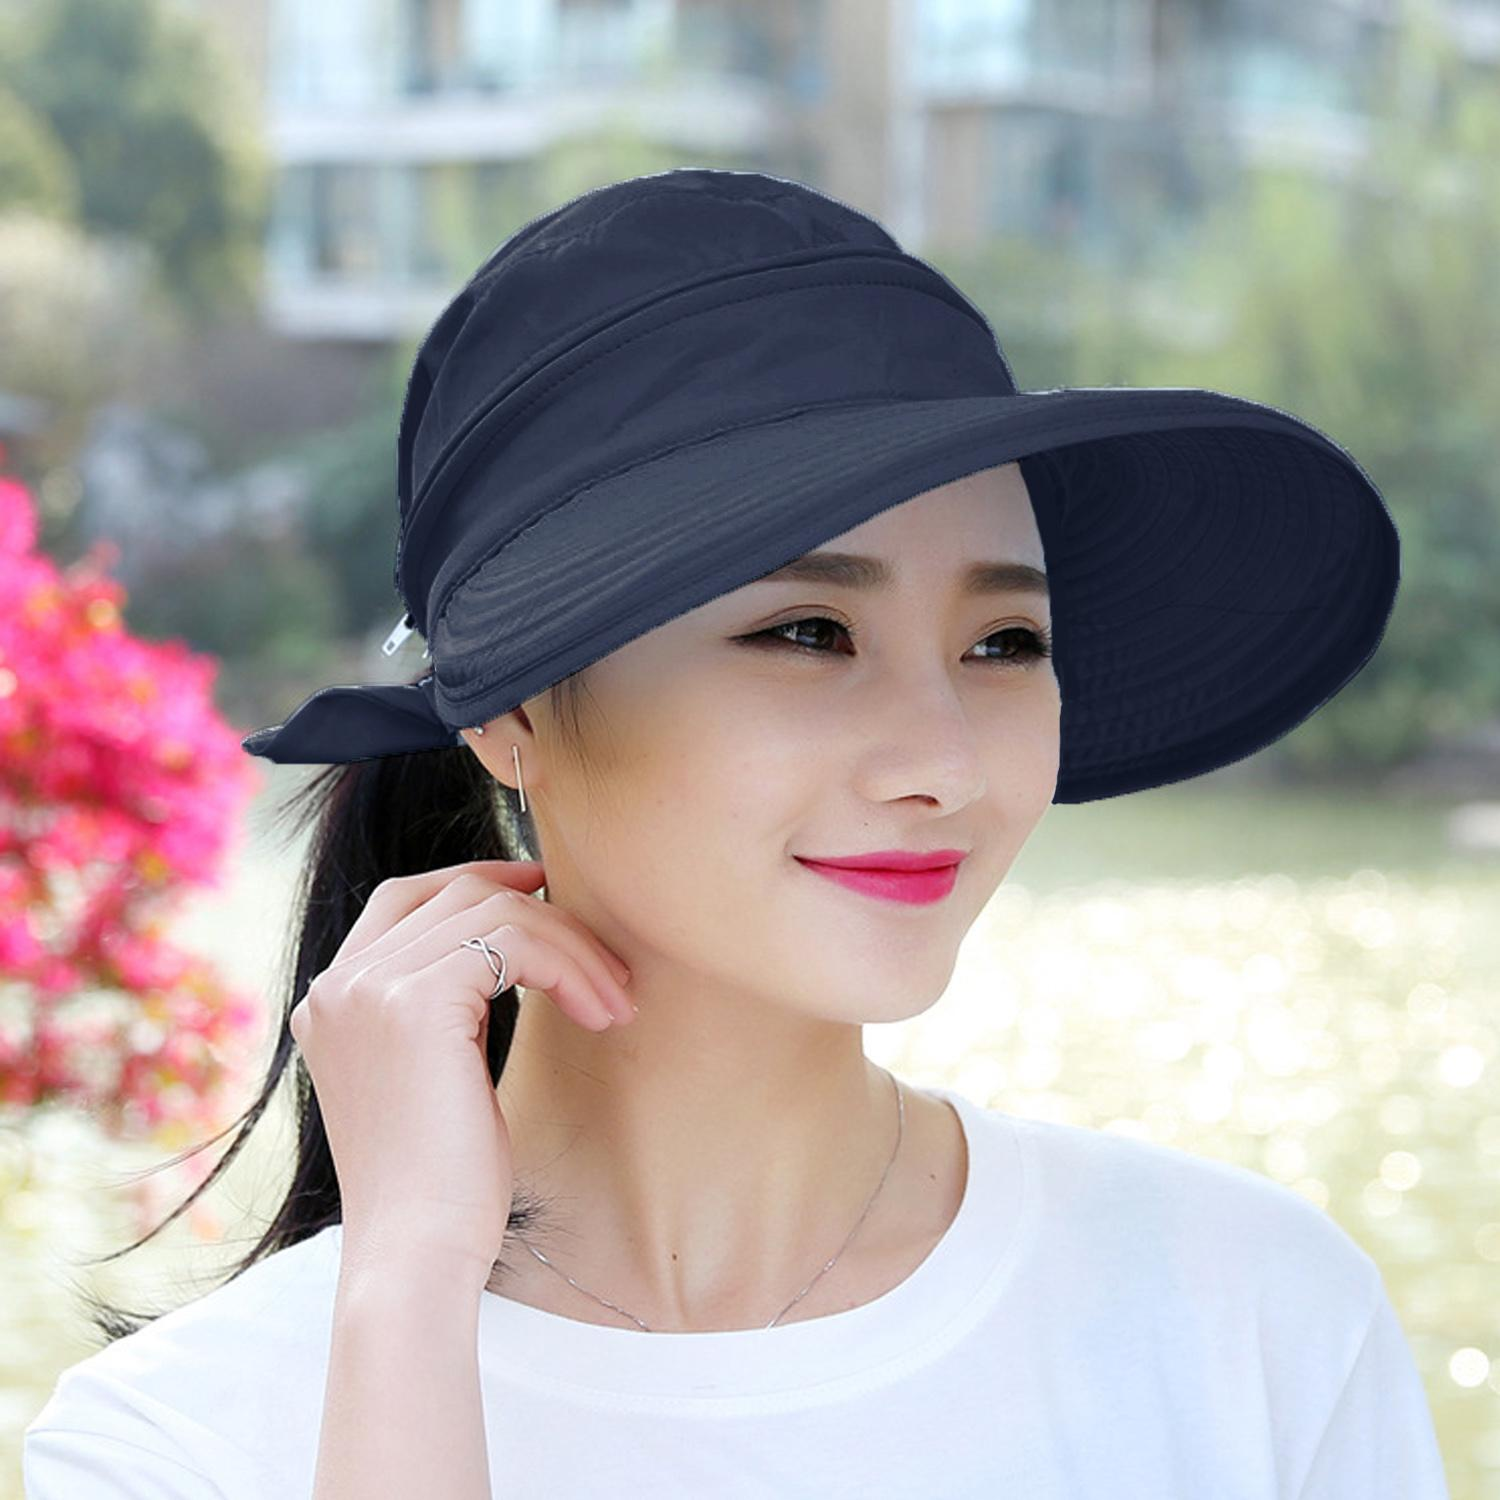 c275aa5f07e16 Women Stylish Wide Brim Summer Outdoor Beach Bucket Sun Hat Cap Sun Block  Detachable Dual Use